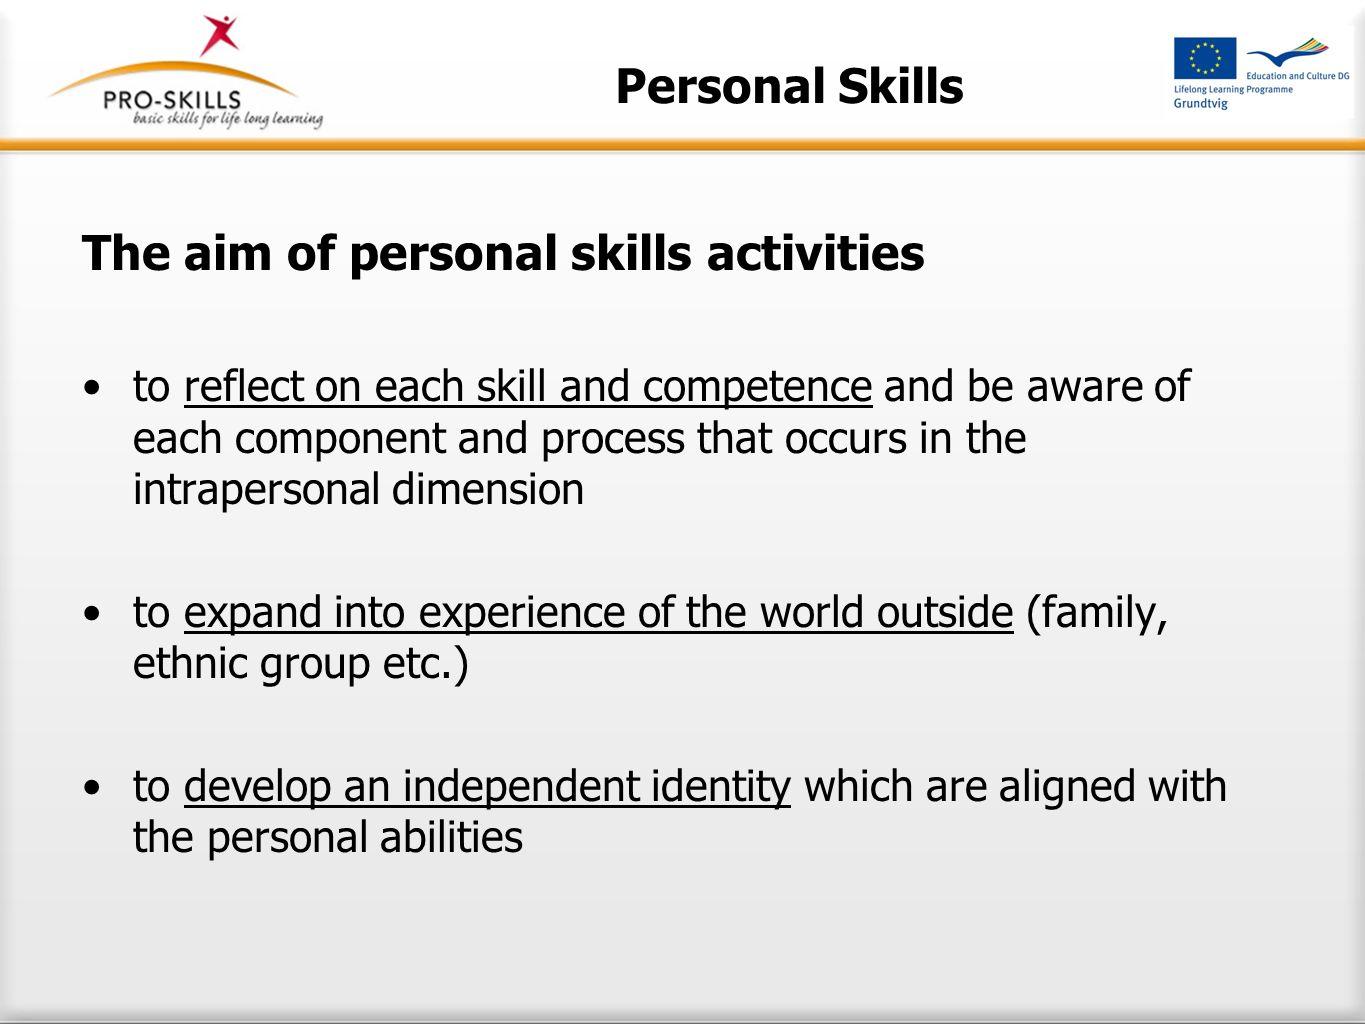 Personal Skills The aim of personal skills activities to reflect on each skill and competence and be aware of each component and process that occurs in the intrapersonal dimension to expand into experience of the world outside (family, ethnic group etc.) to develop an independent identity which are aligned with the personal abilities